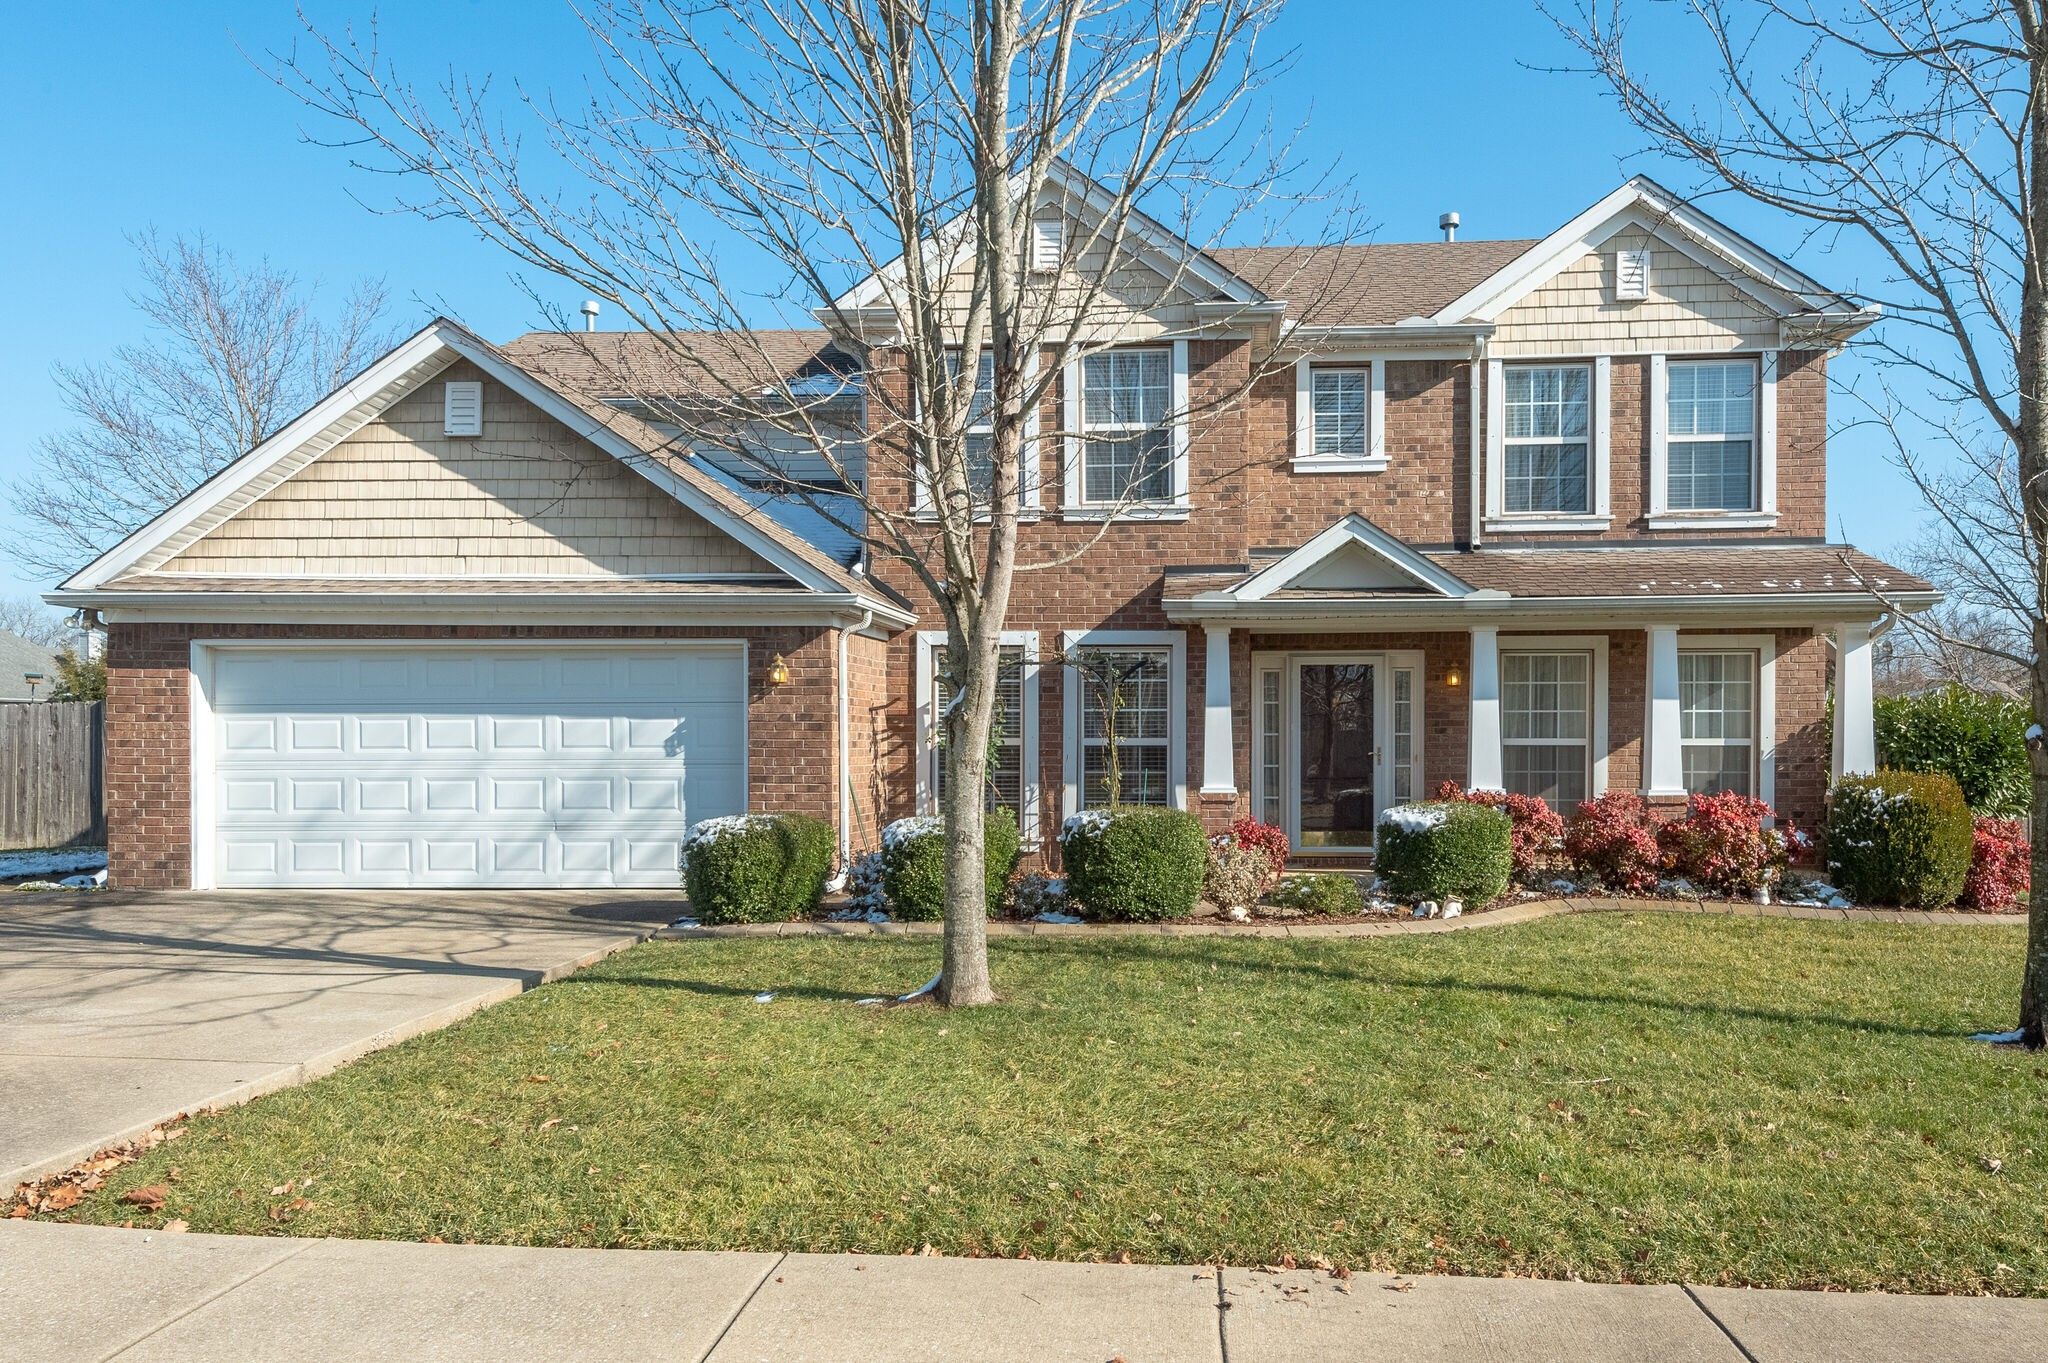 LOVELY SPRING HILL HOME FEATURES GORGEOUS LANDSCAPING-AN OPEN FLOOR PLAN-ELEGANT TRIM WORK-ABUNDANCE OF NATURAL LIGHT-TONS OF CABINET SPACE & TWO PANTRIES IN KITCHEN-FORMAL STUDY DOWNSTAIRS-OVERSIZED MASTER SUITE WITH EXTRA LARGE CLOSET-BEAUTIFUL & RELAXING SCREENED-IN PORCH-GENEROUSLY SIZED GARAGE-SPRINKLER SYSTEM-LEVEL LOT WITH PRIVACY FENCE IN BACK YARD-MINUTES FROM RESTAURANTS & SHOPPING-SHORT DRIVE TO COOL SPRINGS & NASHVILLE-HOME TO BE SOLD AS-IS.